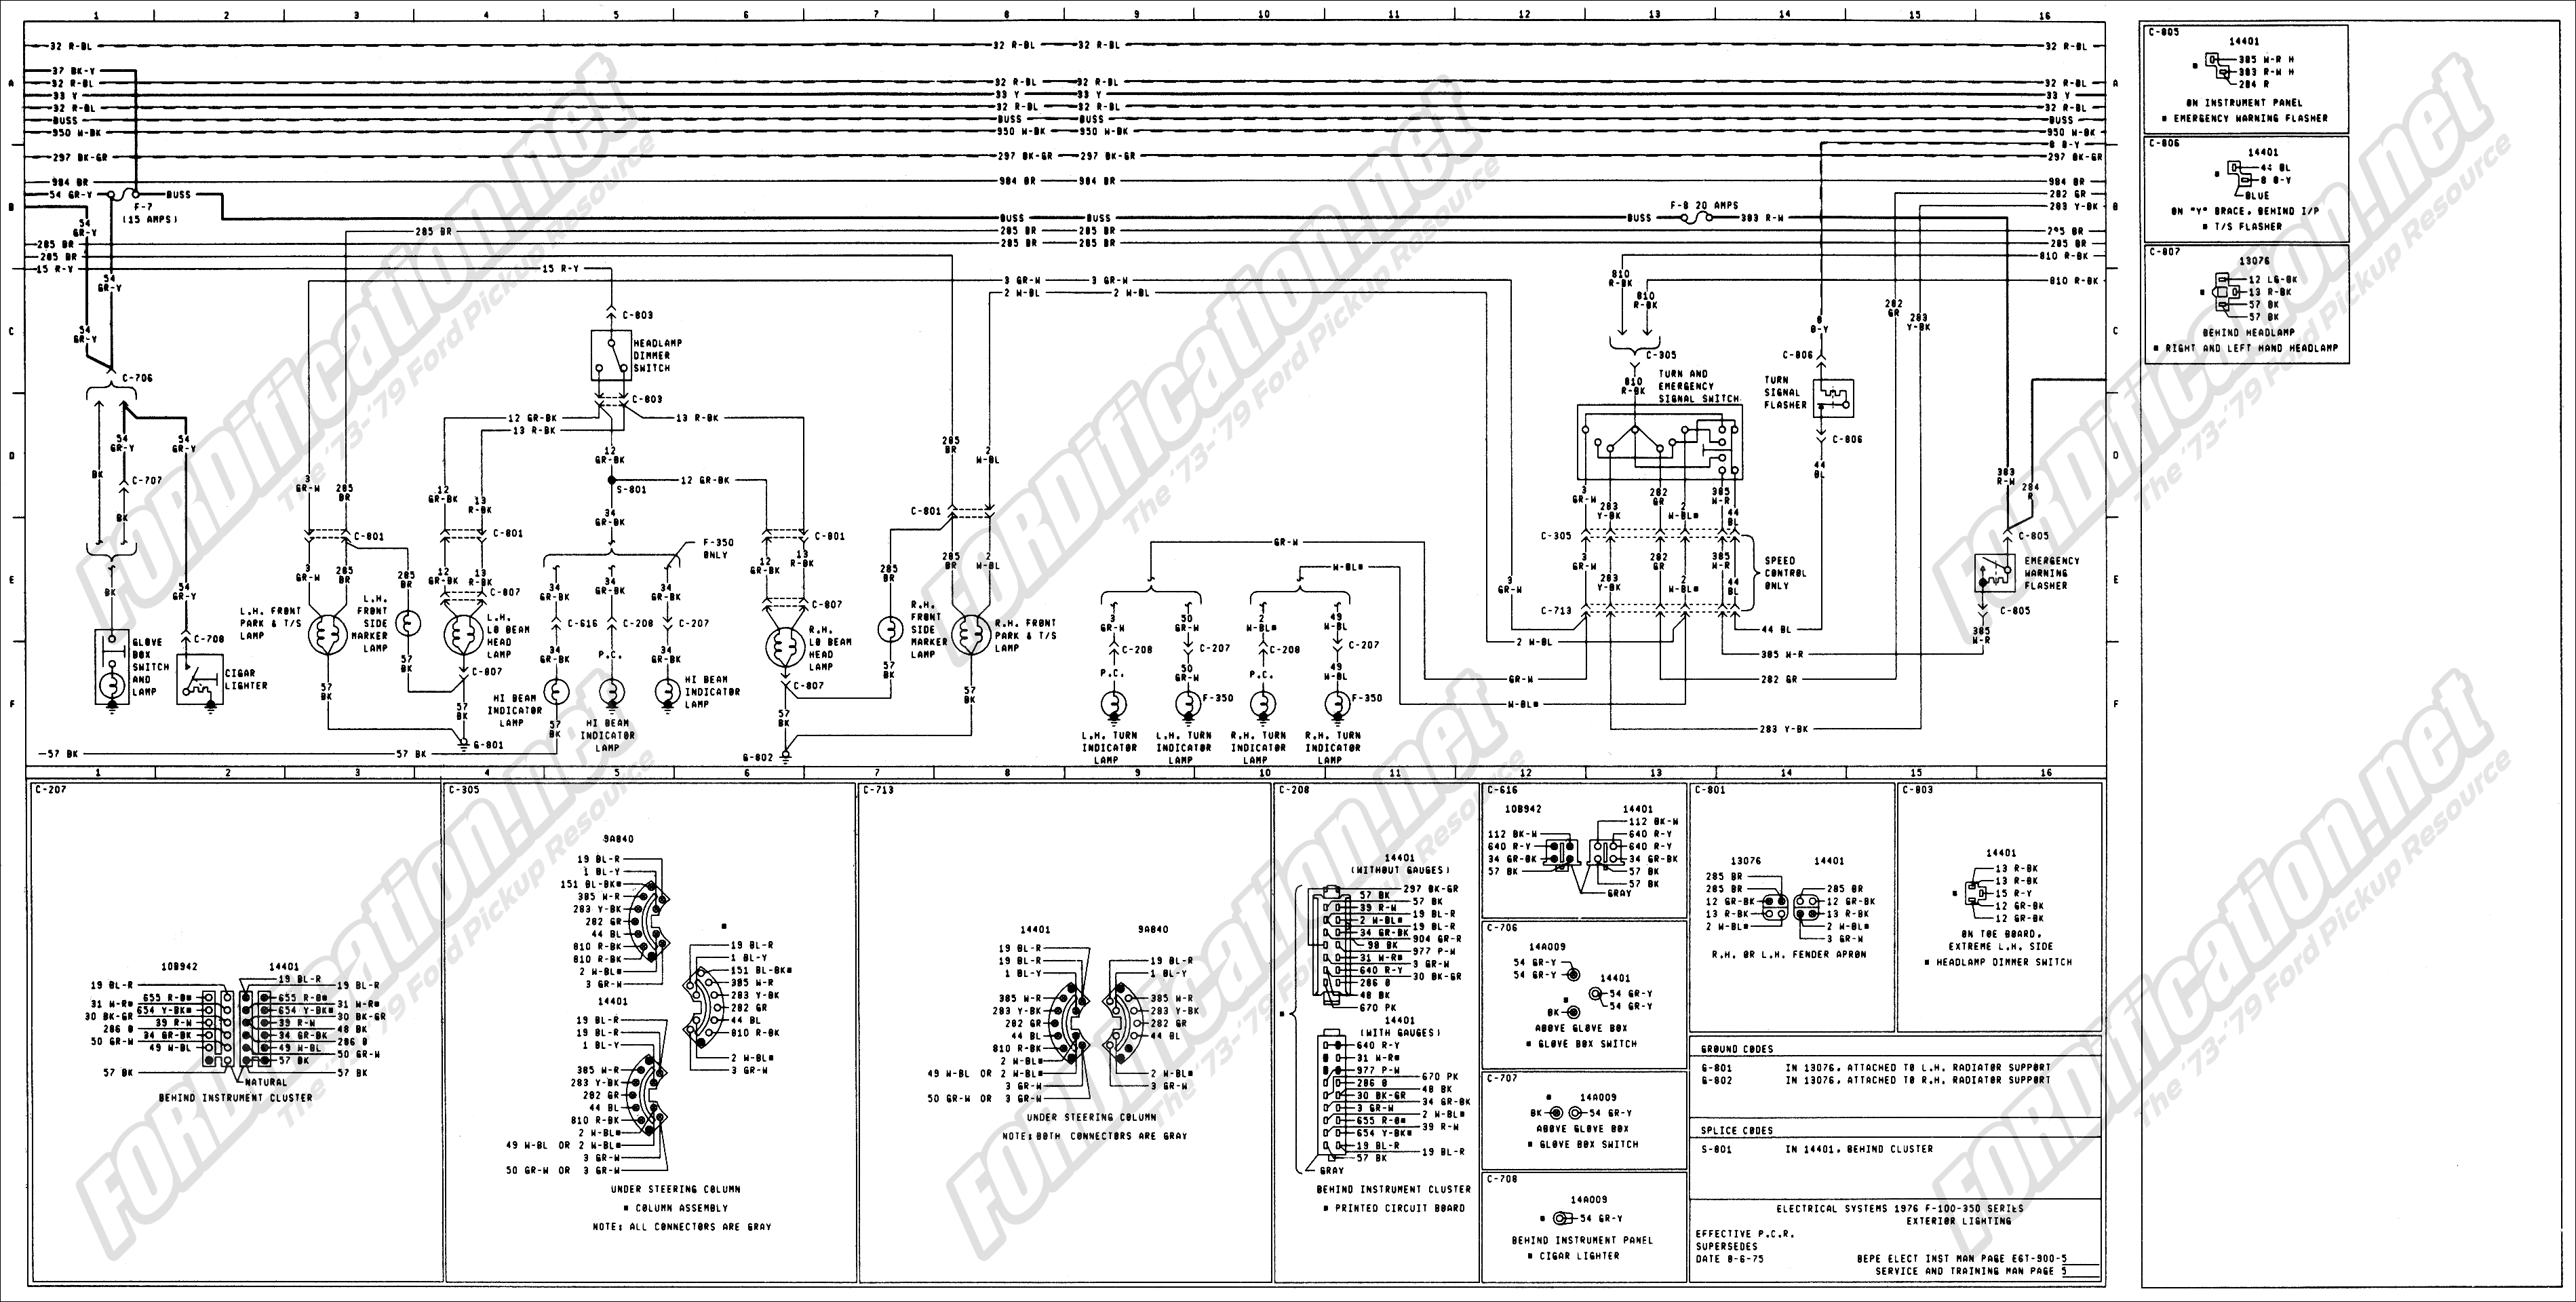 wiring_76master_5of9 1973 1979 ford truck wiring diagrams & schematics fordification net 1977 ford f150 wiring diagram at eliteediting.co